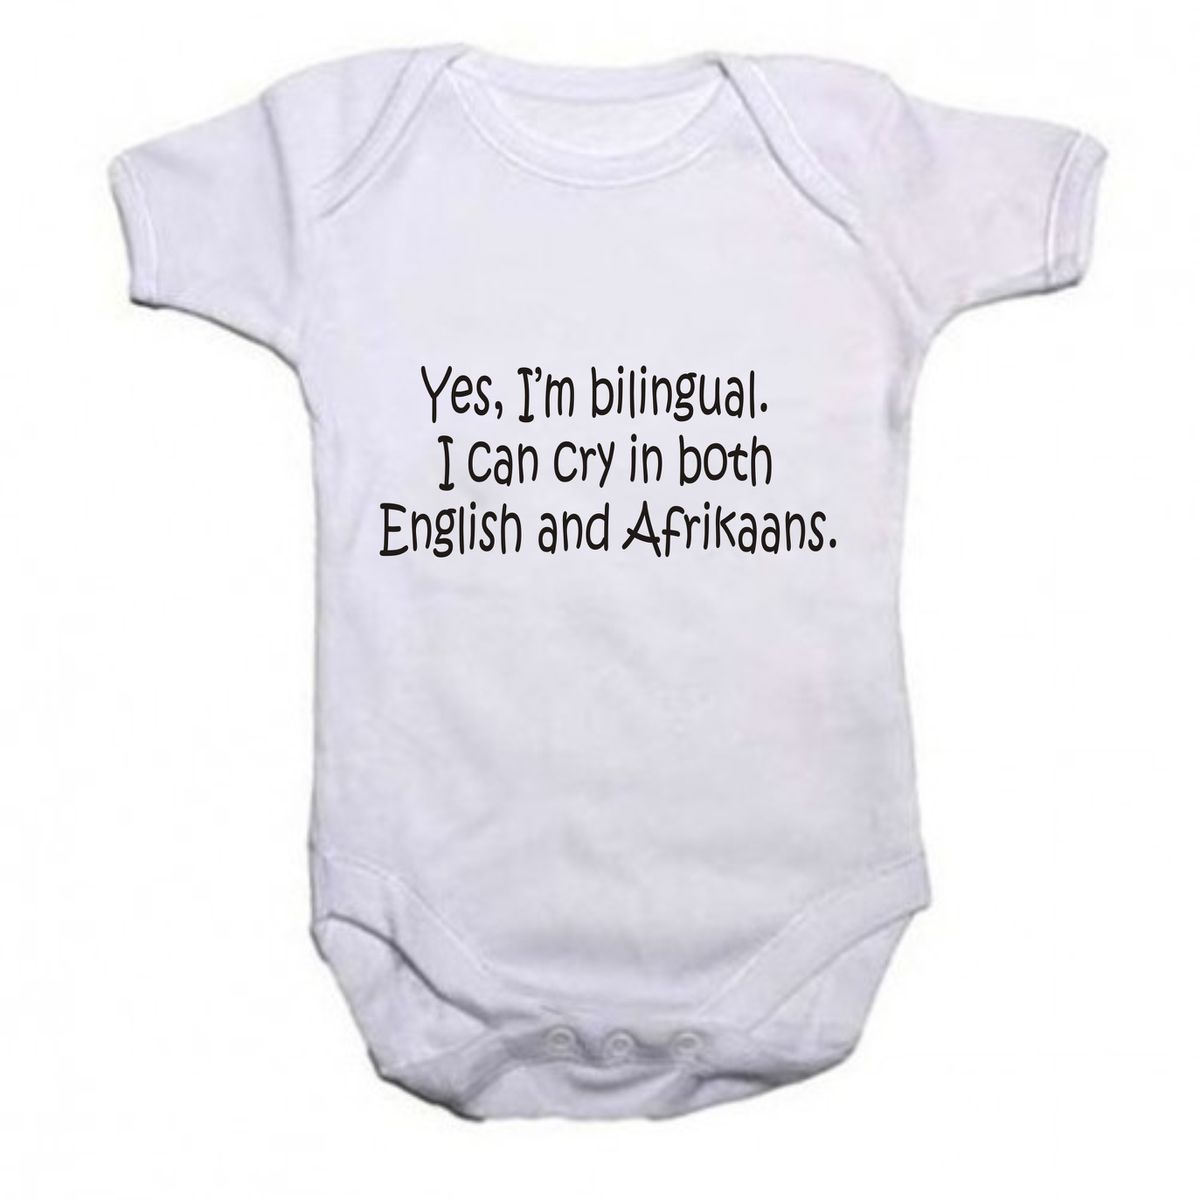 Noveltees cry in english and afrikaans baby grow buy online in noveltees cry in english and afrikaans baby grow loading zoom fandeluxe Gallery